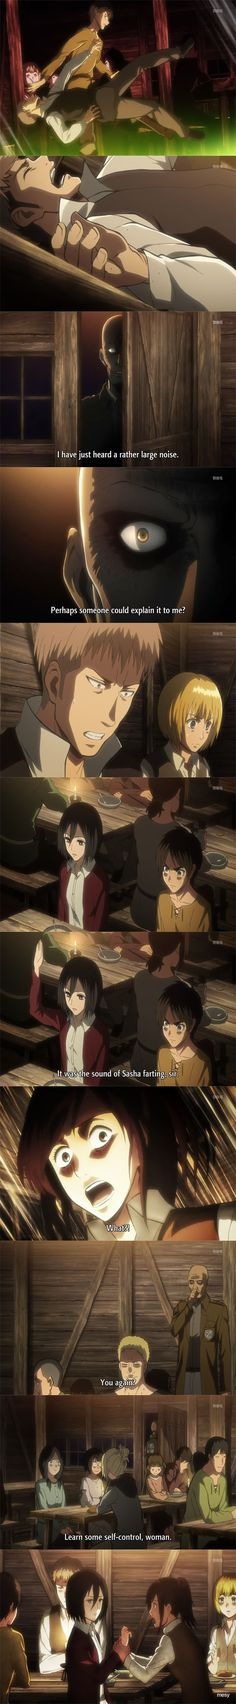 Shingeki no Kyojin - Attack on Titan - mikasa blaming the noise on sasha - Strip by mesy-design.deviantart.com on @deviantART